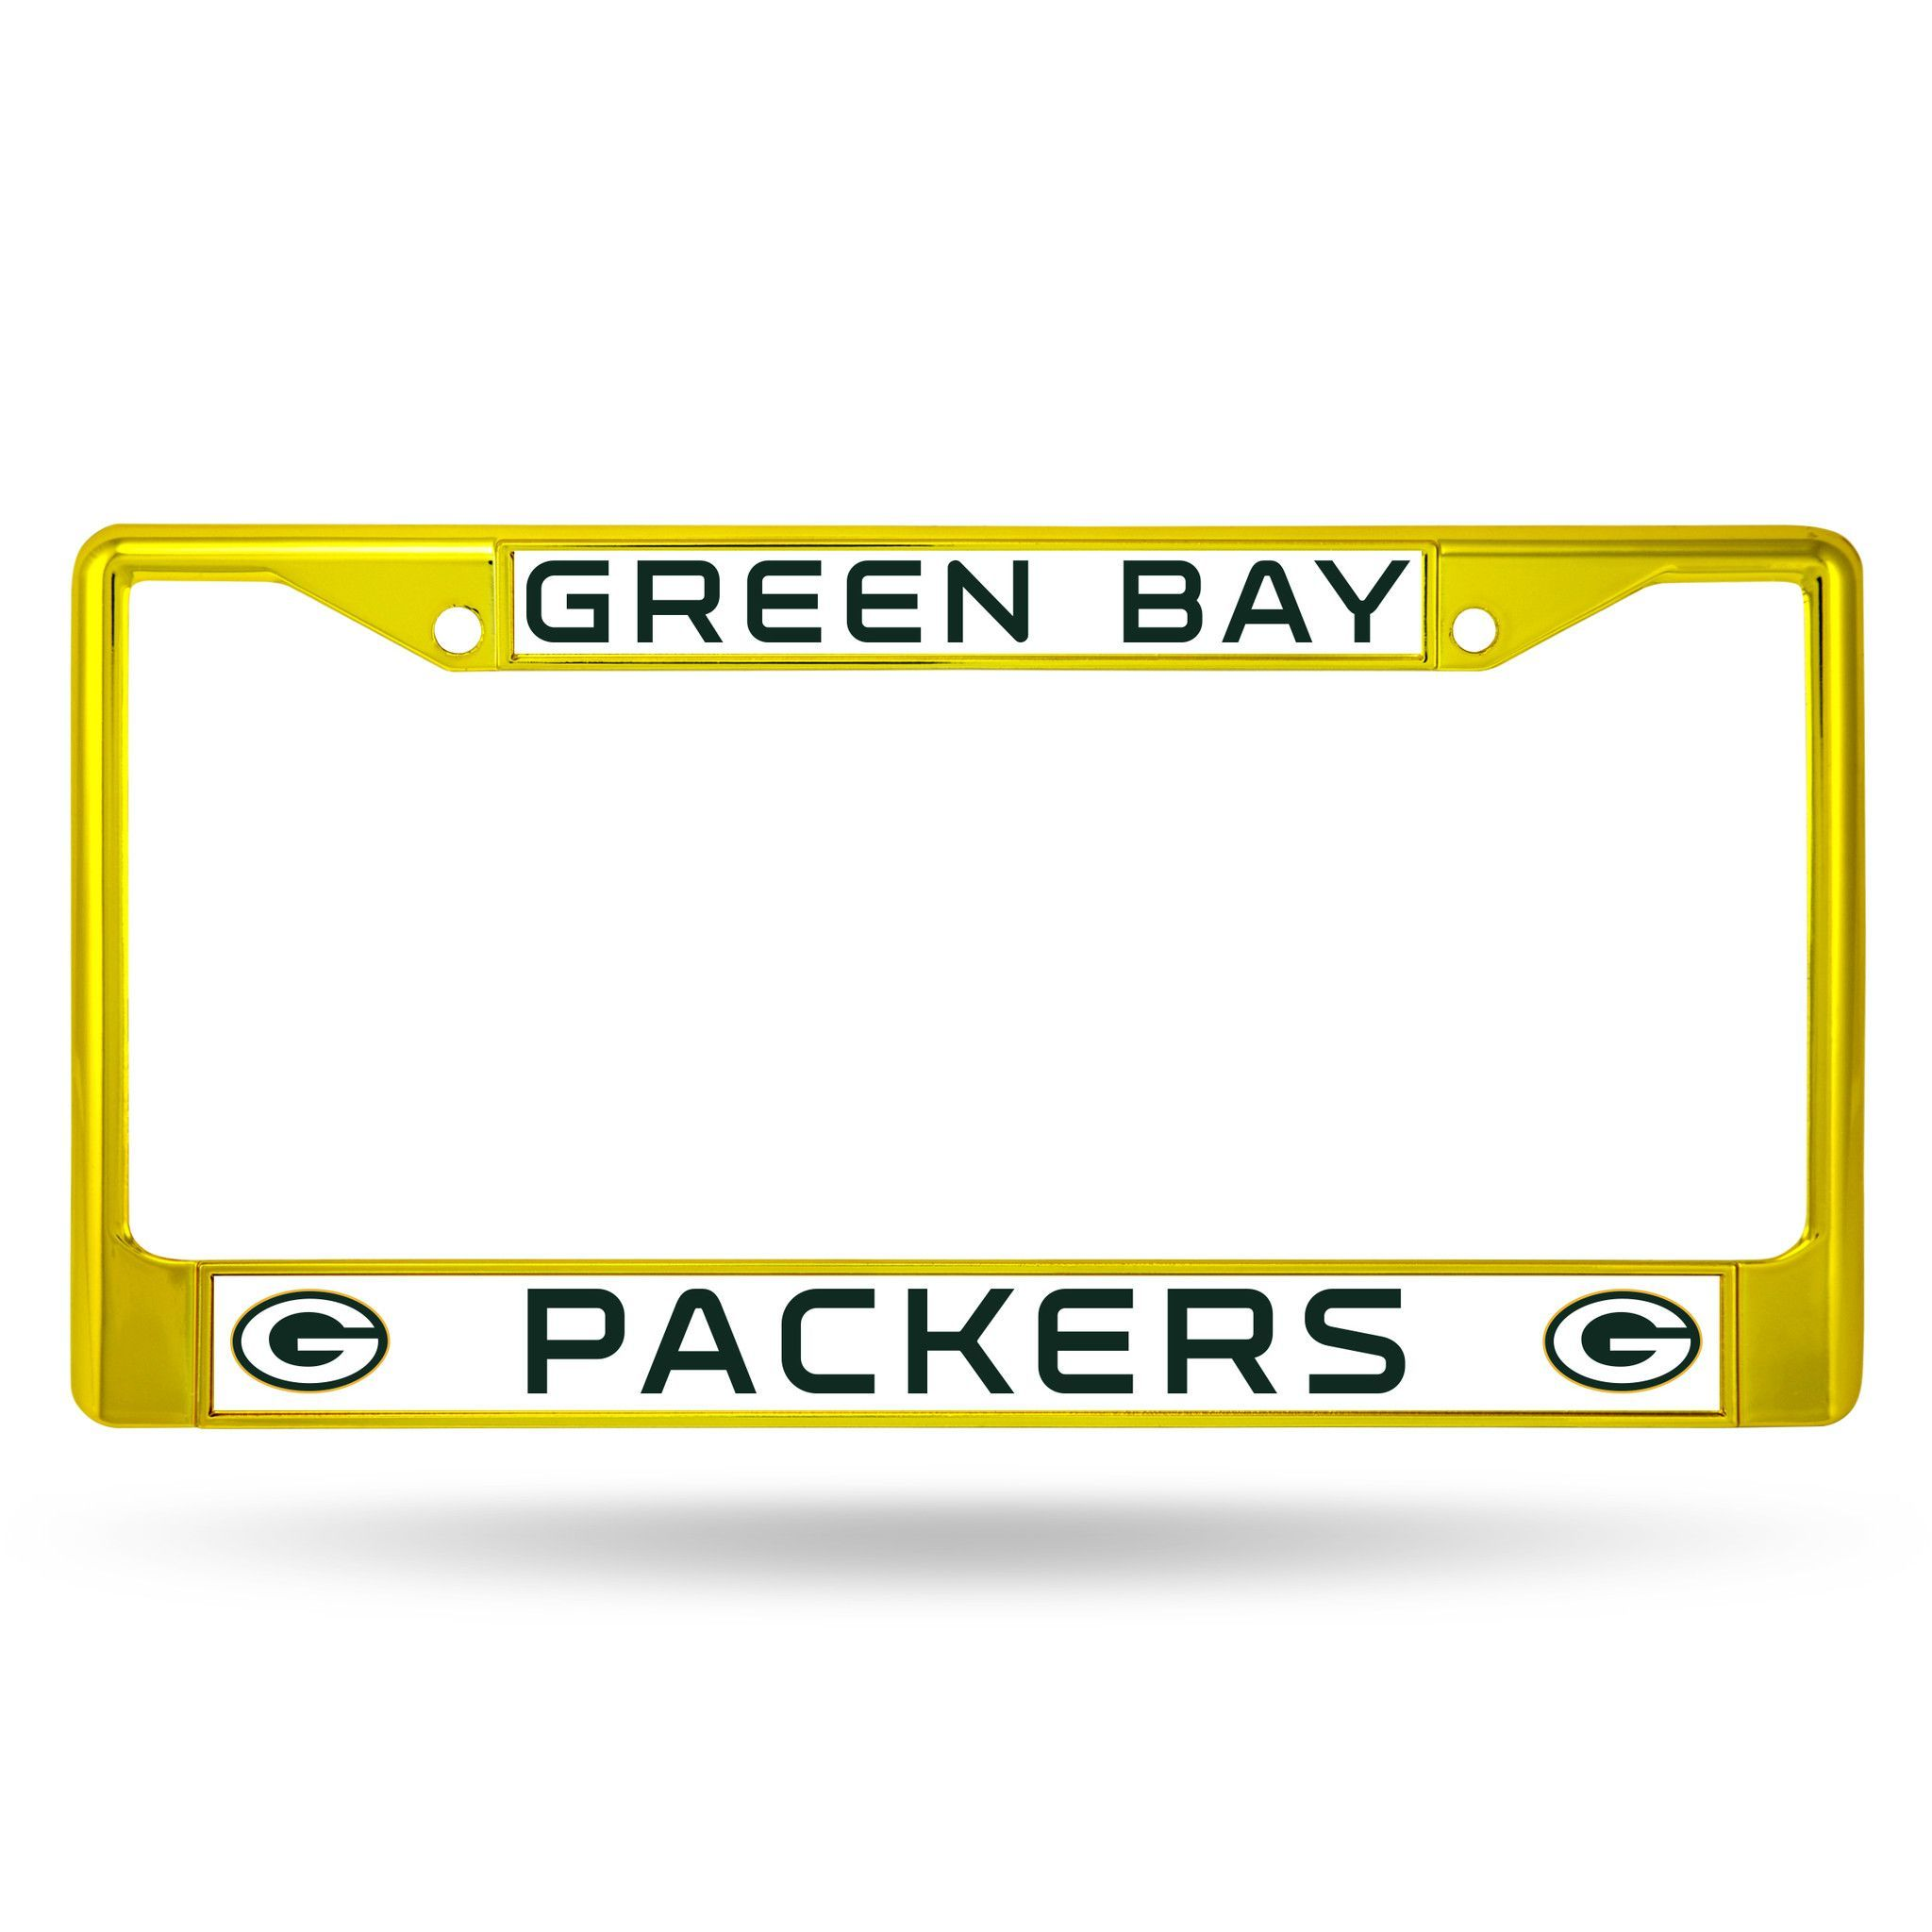 Green Bay Packers Color Chrome Metal License Plate Frame New Free Shipping Gold License Plate Covers License Plate Frames Steelers License Plate